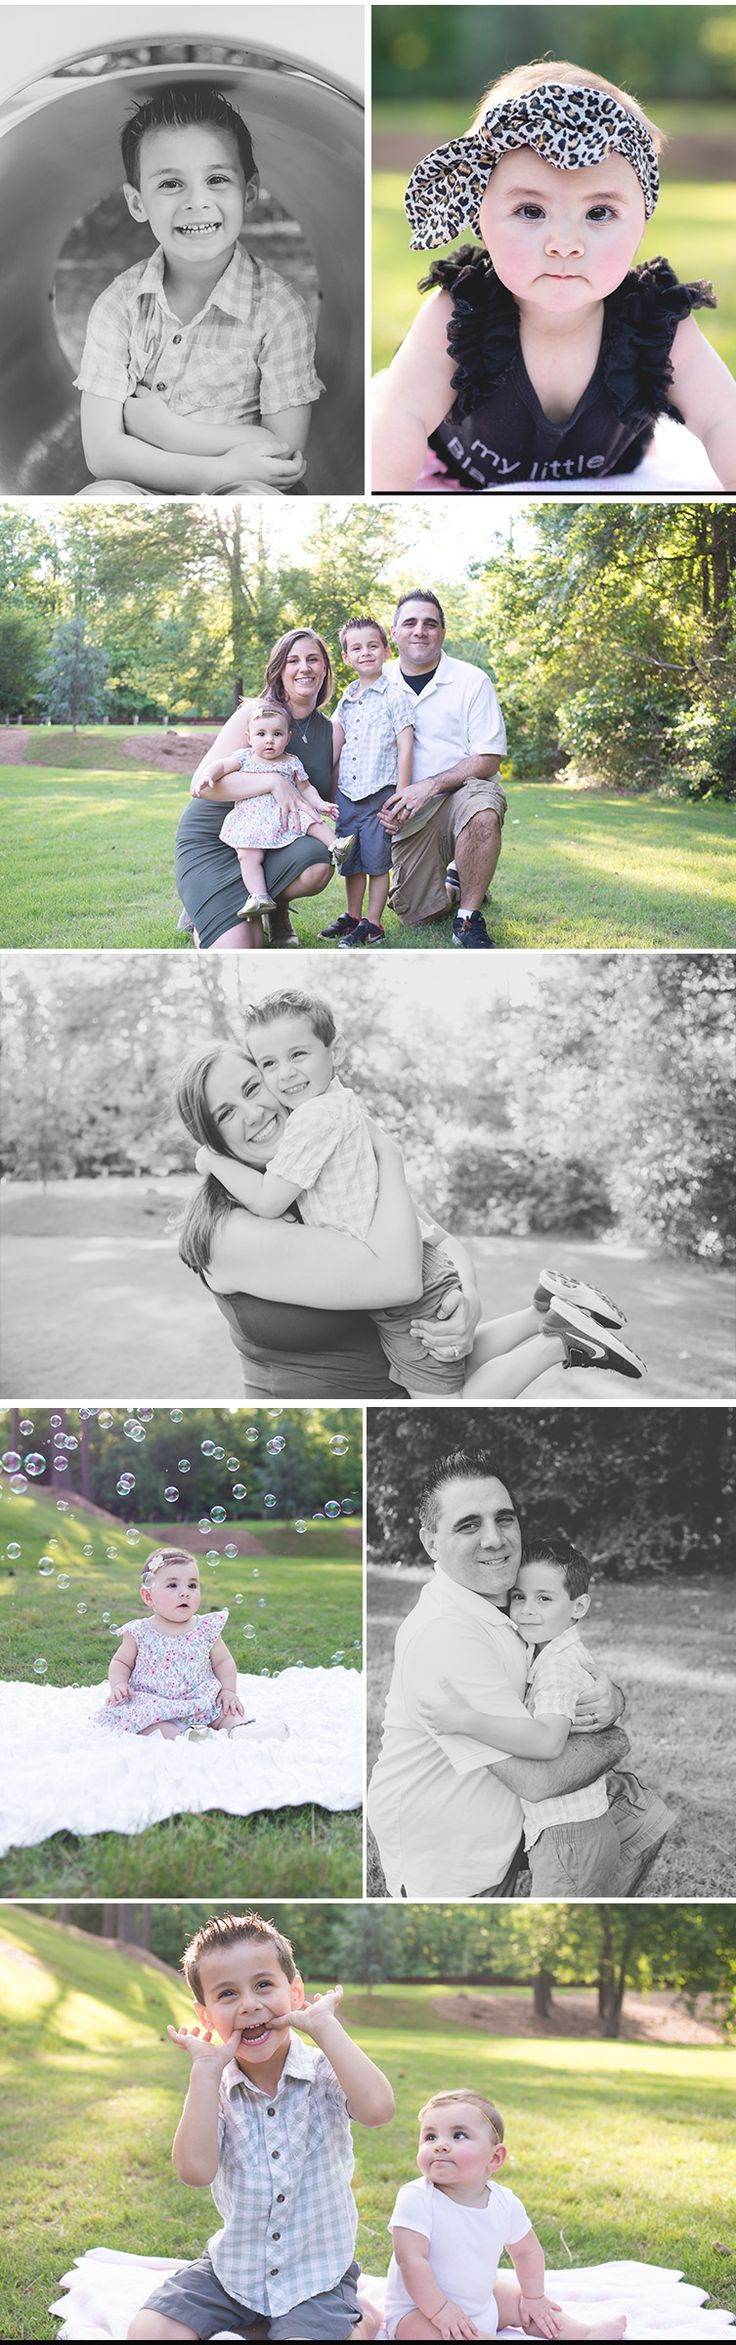 Sweet family portraits outside   Sunshine pictures   Family photo ideas   Outdoor photo shoot with kids